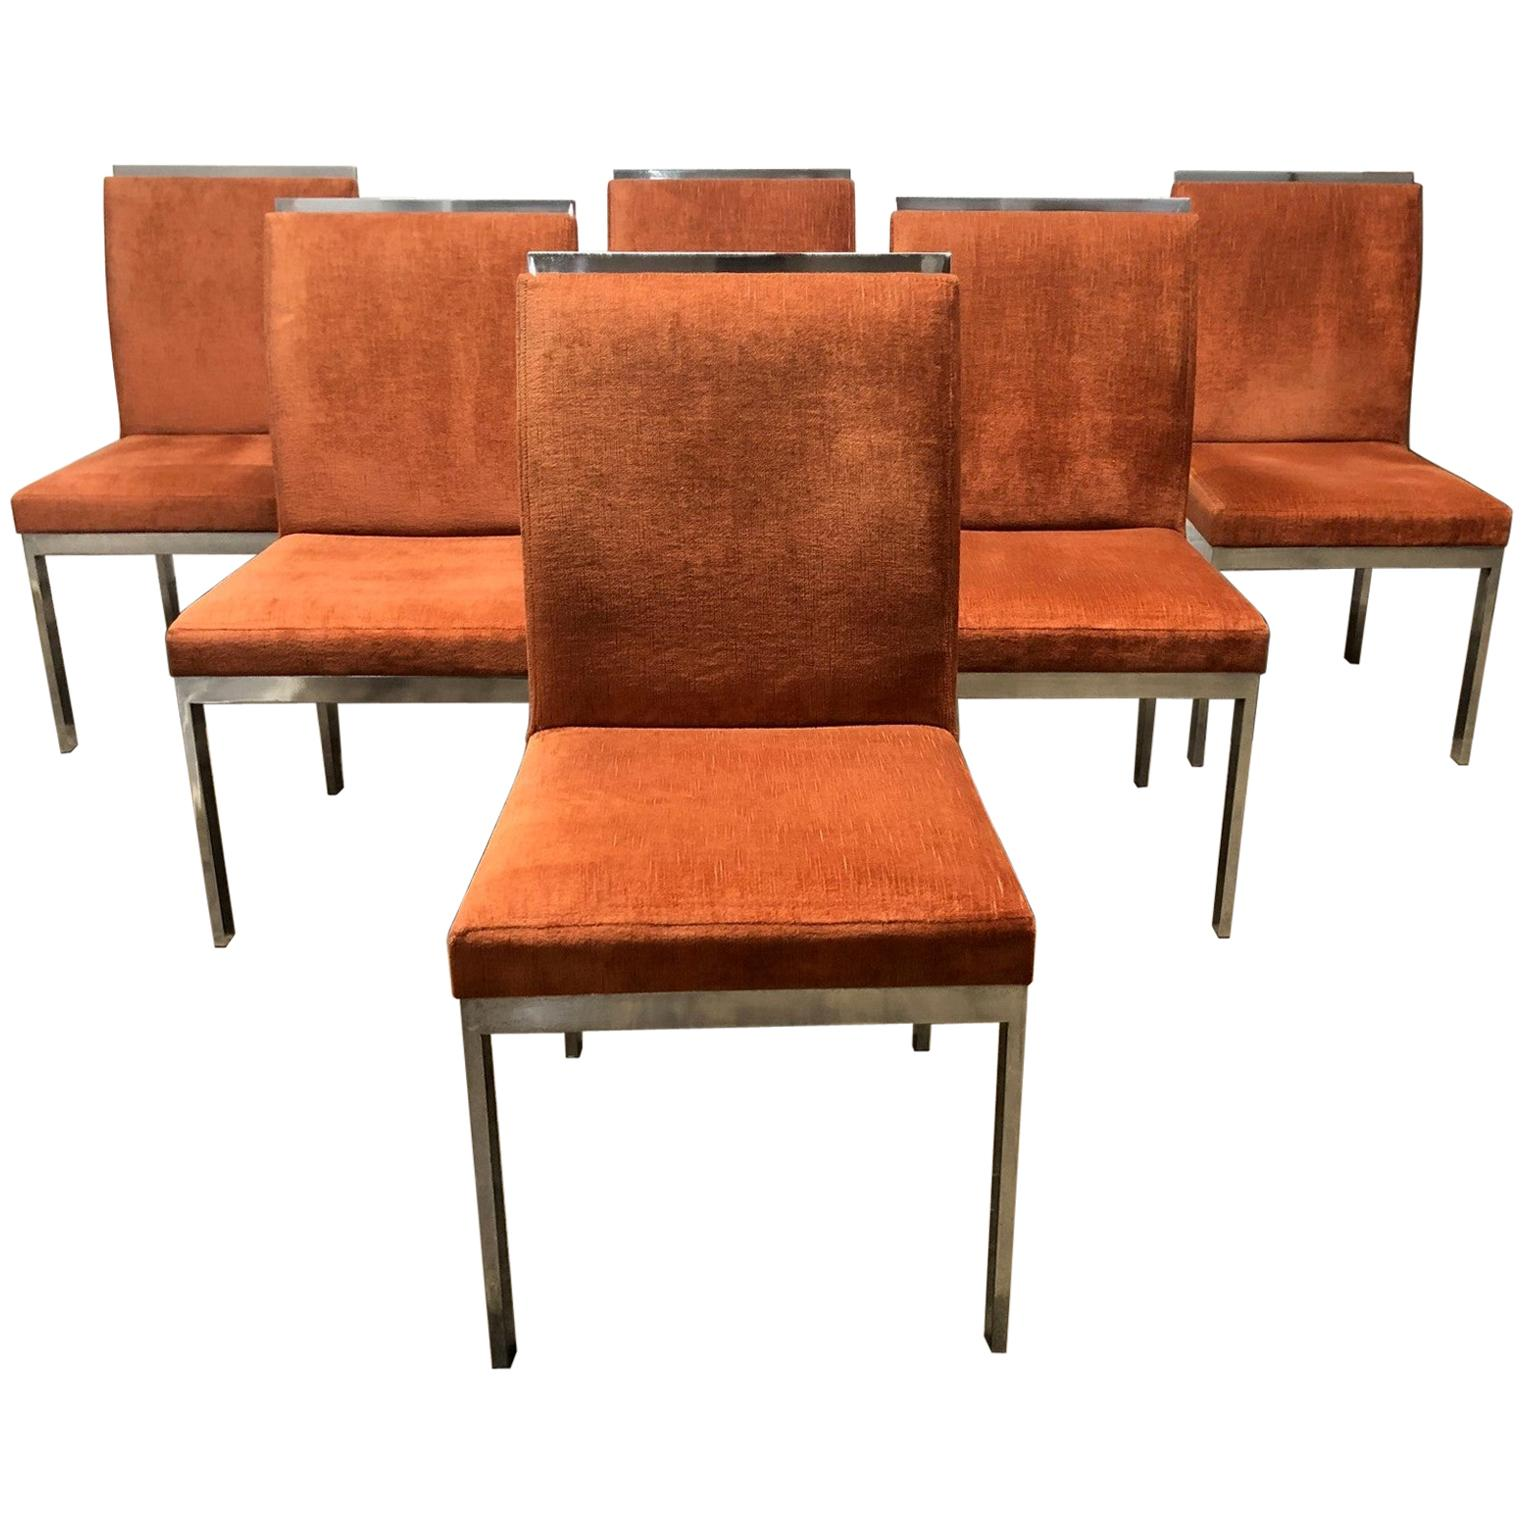 Set of 6 Design Institute of America Chrome Dining Chairs